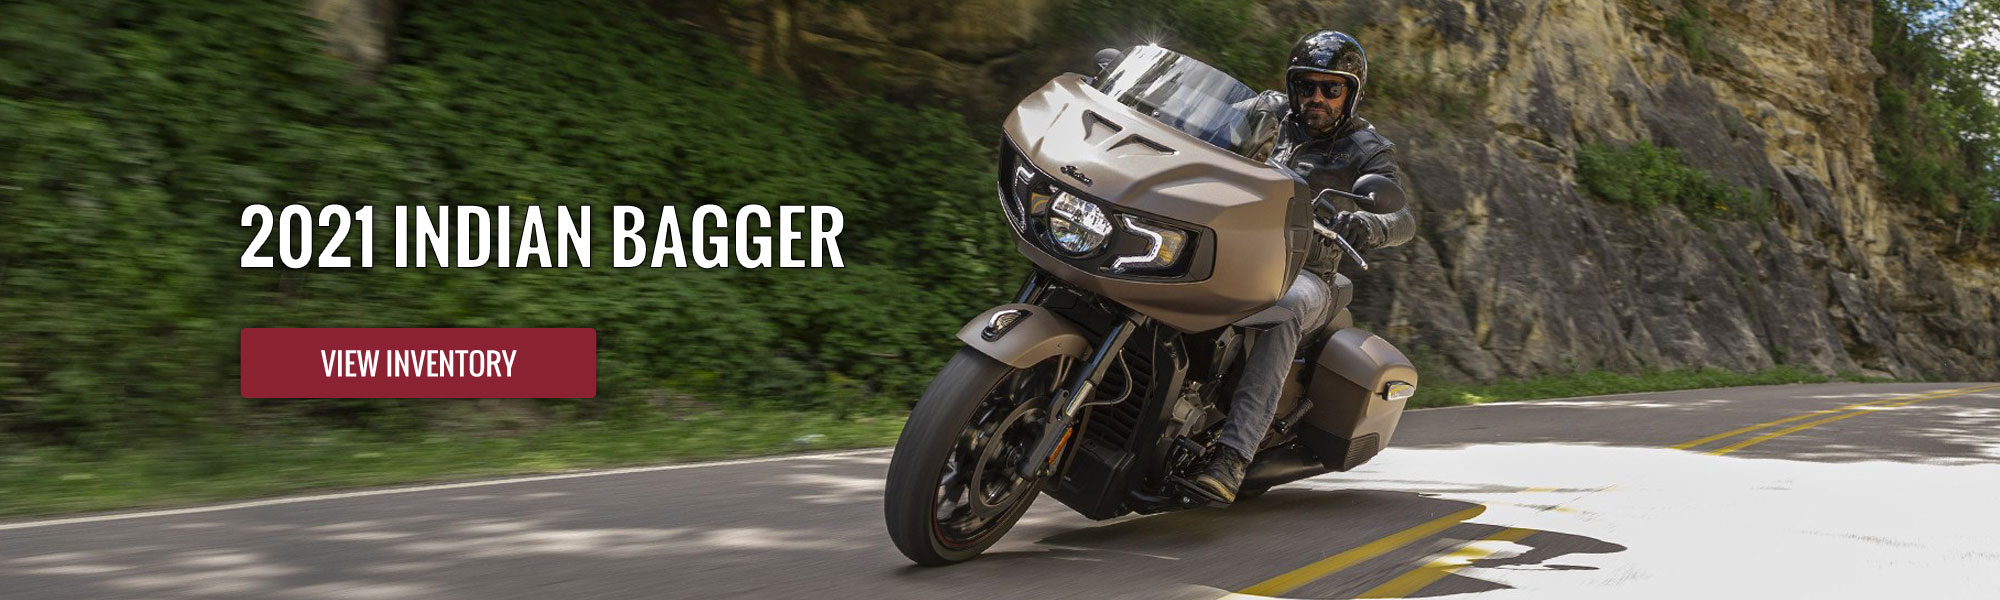 2021 Models - Indian Motorcycle, White Plains 2021 - Bagger